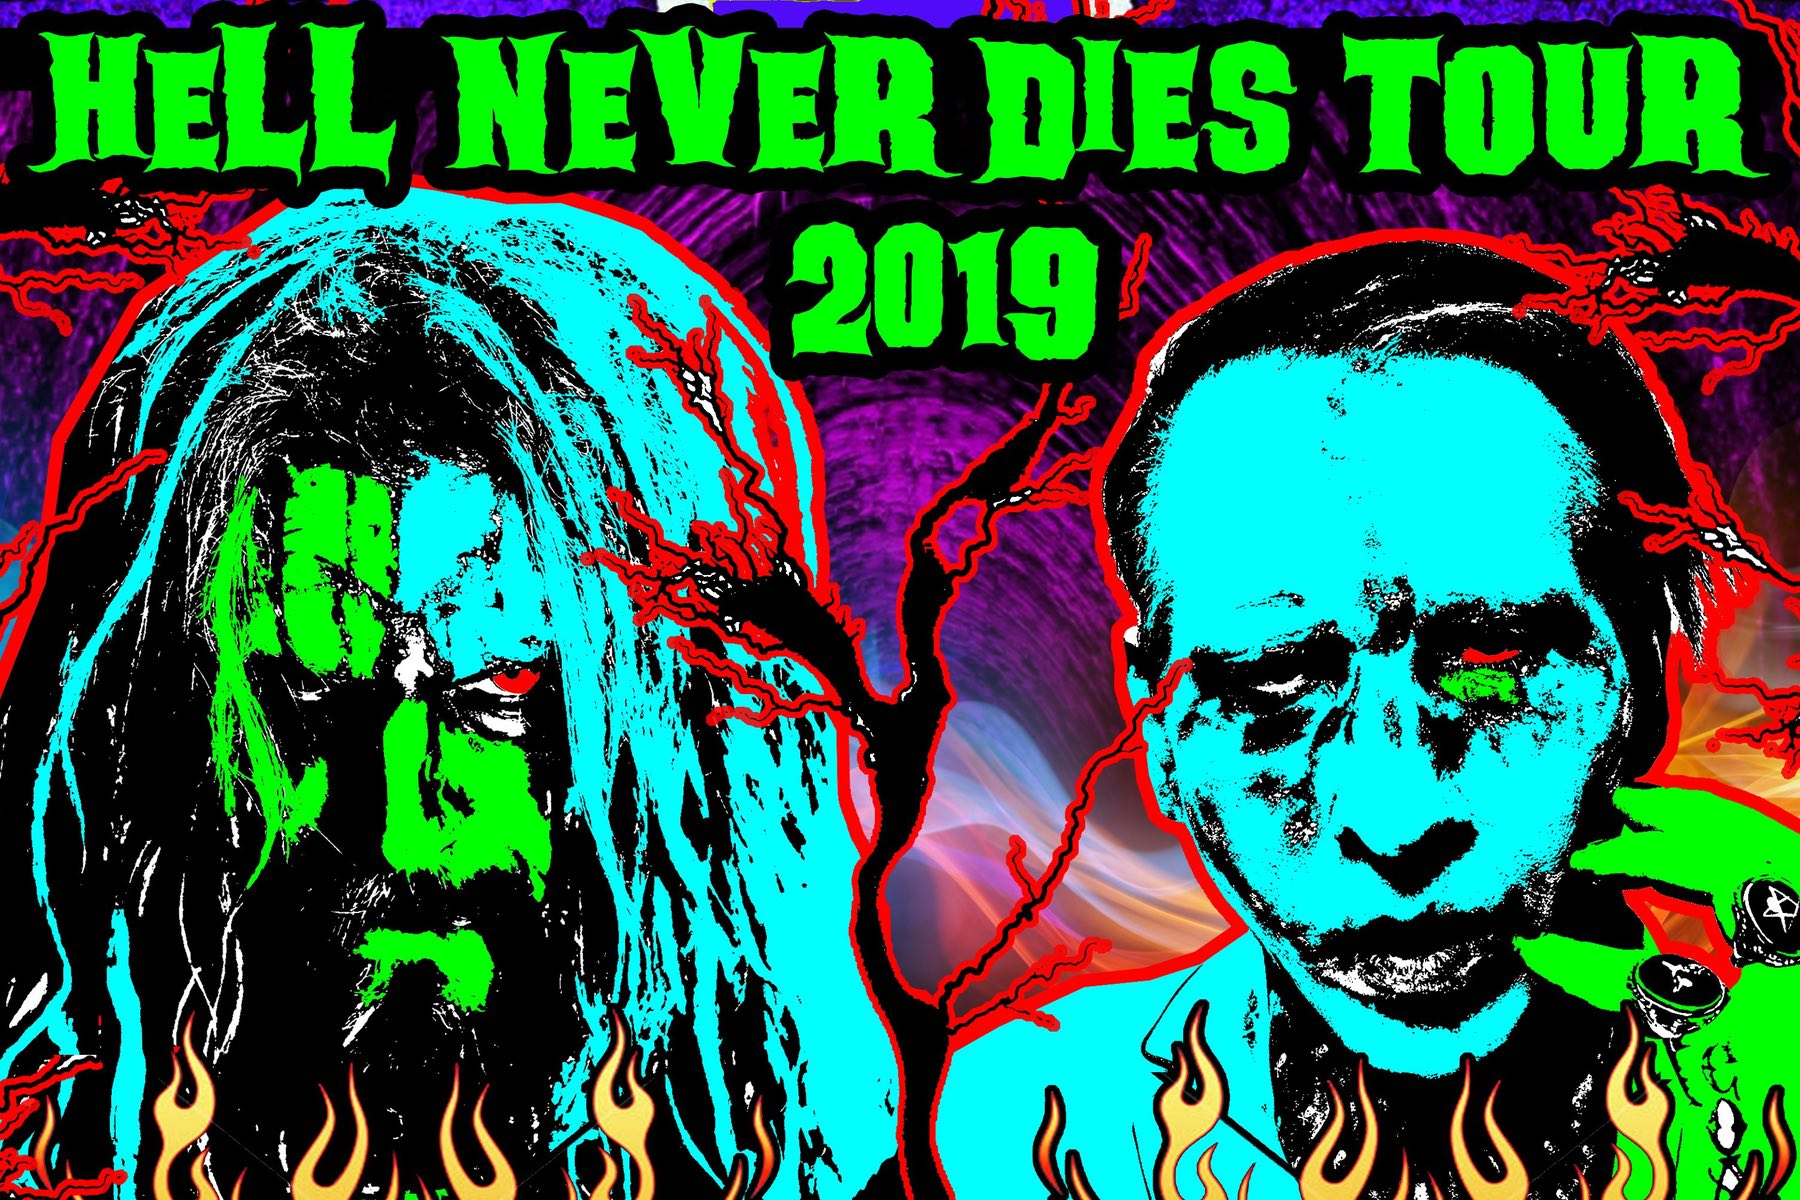 Twins of Evil Hell Never Dies Tour 2019 Rob Zombie Marilyn Manson